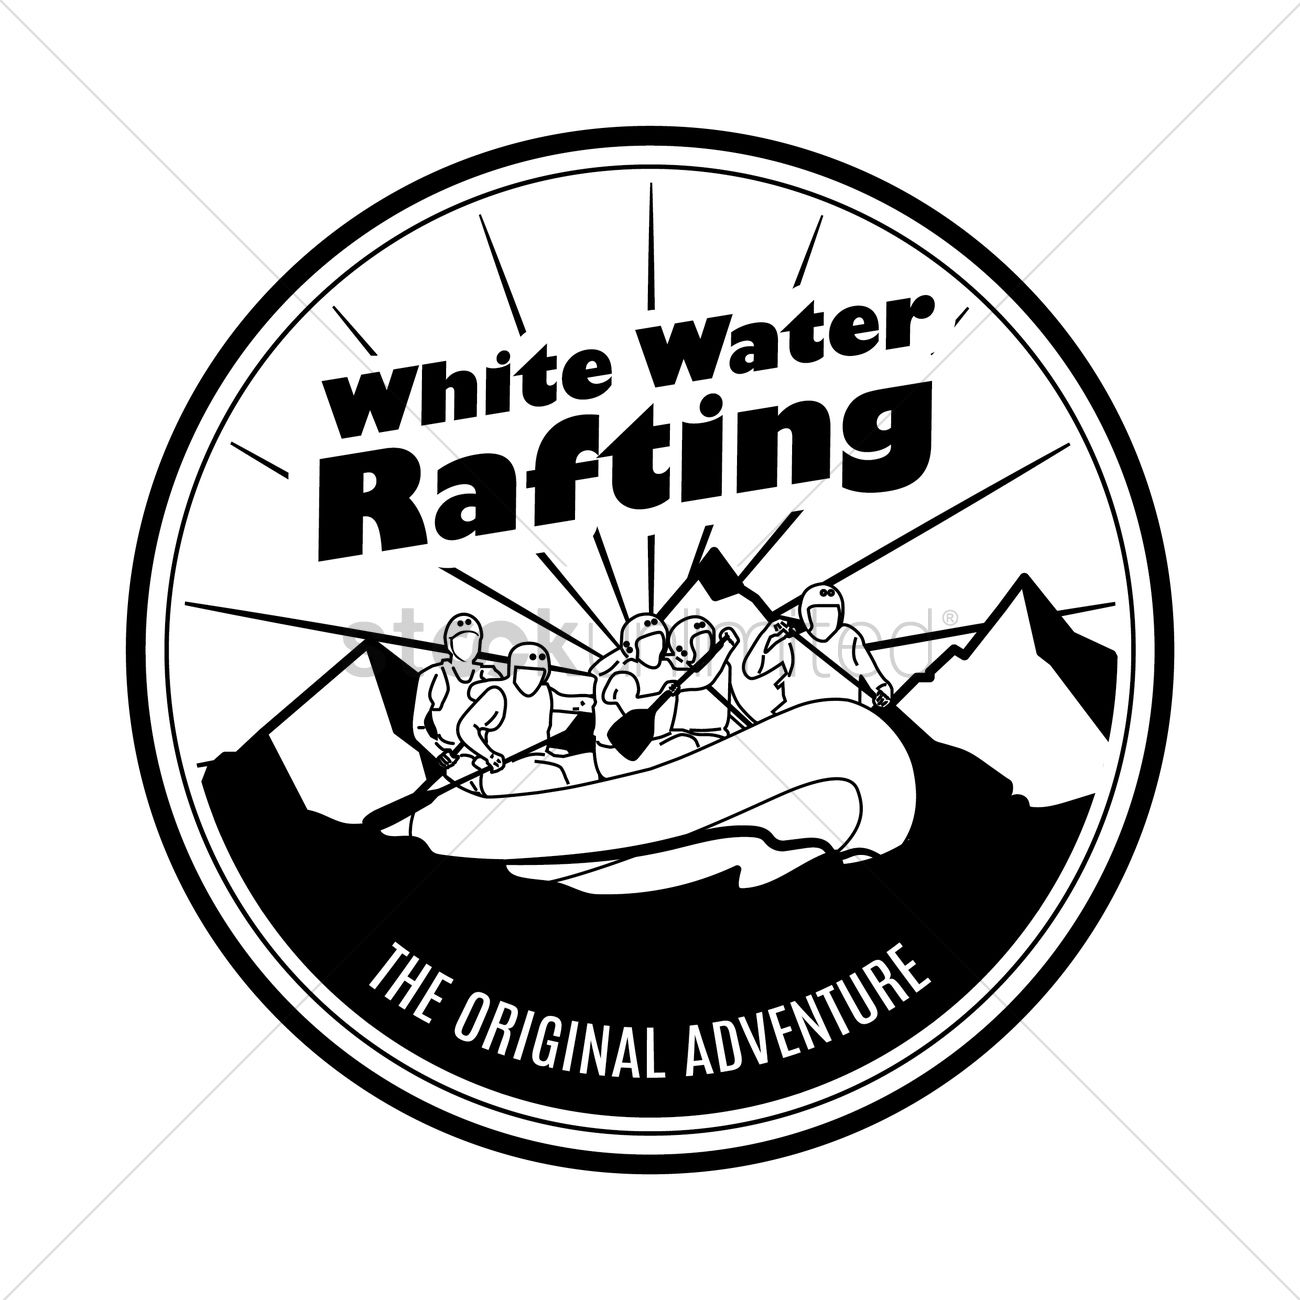 White water rafting label Vector Image.